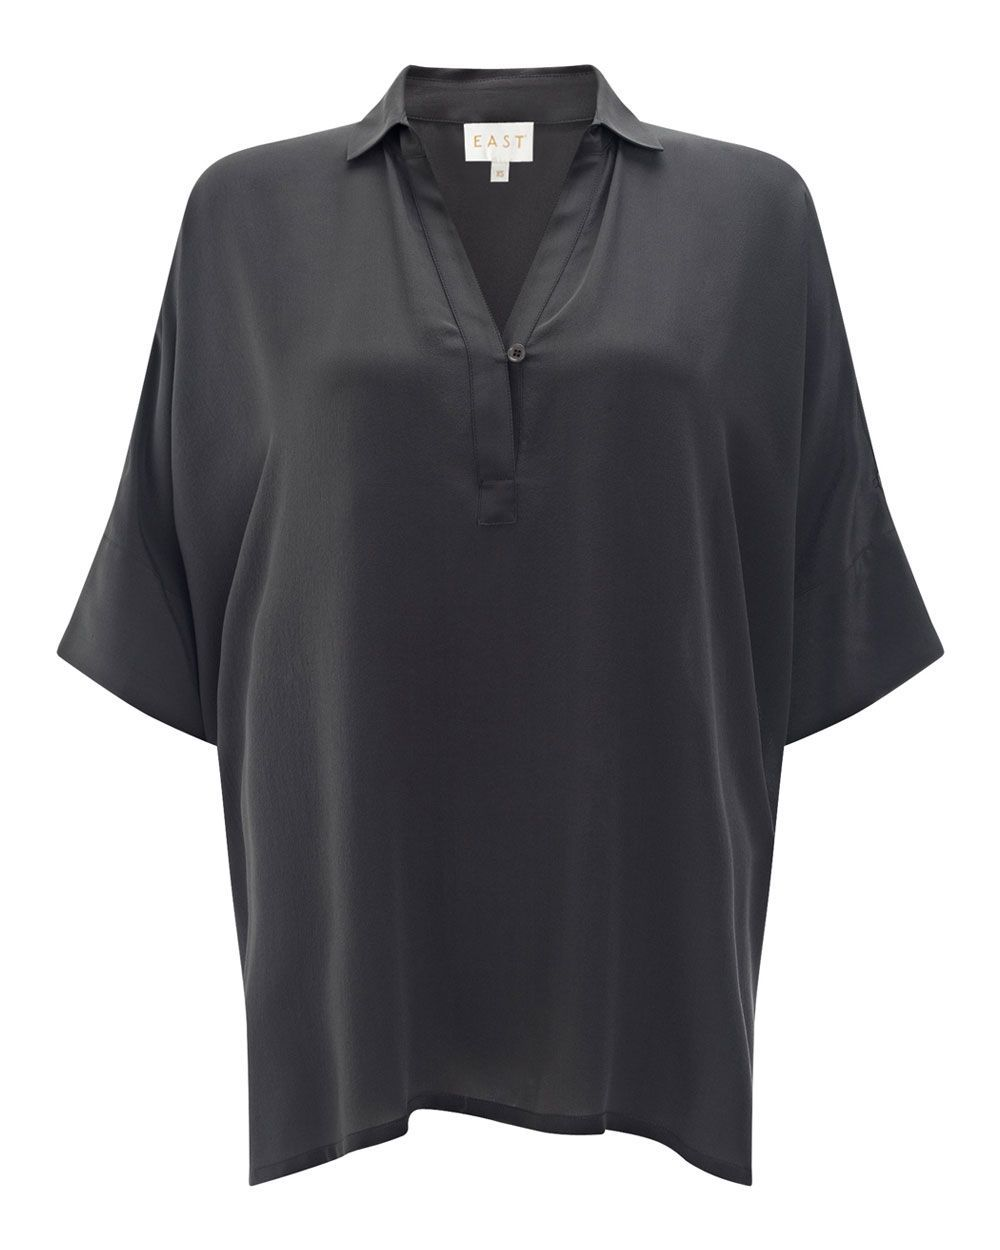 Oversized Silk Shirt, Grey - neckline: shirt collar/peter pan/zip with opening; sleeve style: dolman/batwing; pattern: plain; length: below the bottom; style: shirt; predominant colour: charcoal; occasions: casual, creative work; fibres: silk - 100%; fit: loose; sleeve length: half sleeve; texture group: silky - light; pattern type: fabric; season: a/w 2015; wardrobe: basic